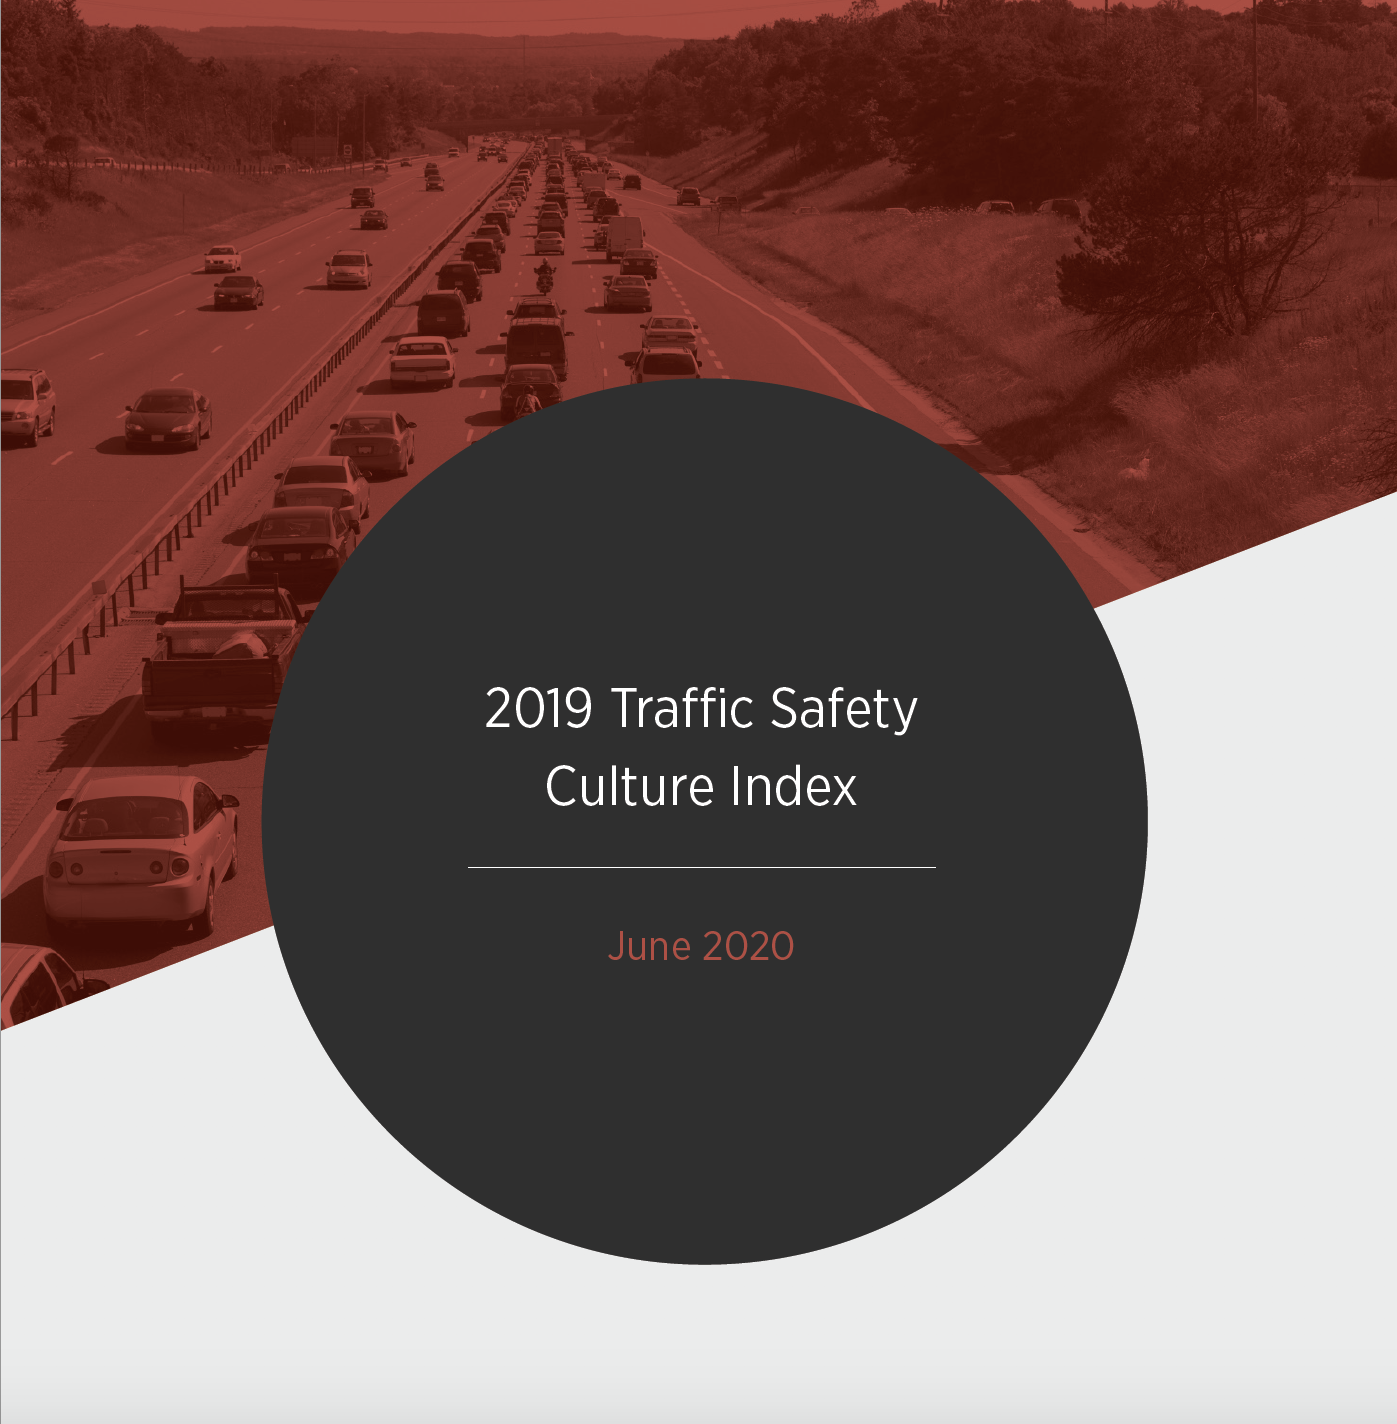 Traffic Safety Culture Index 1.png detail image